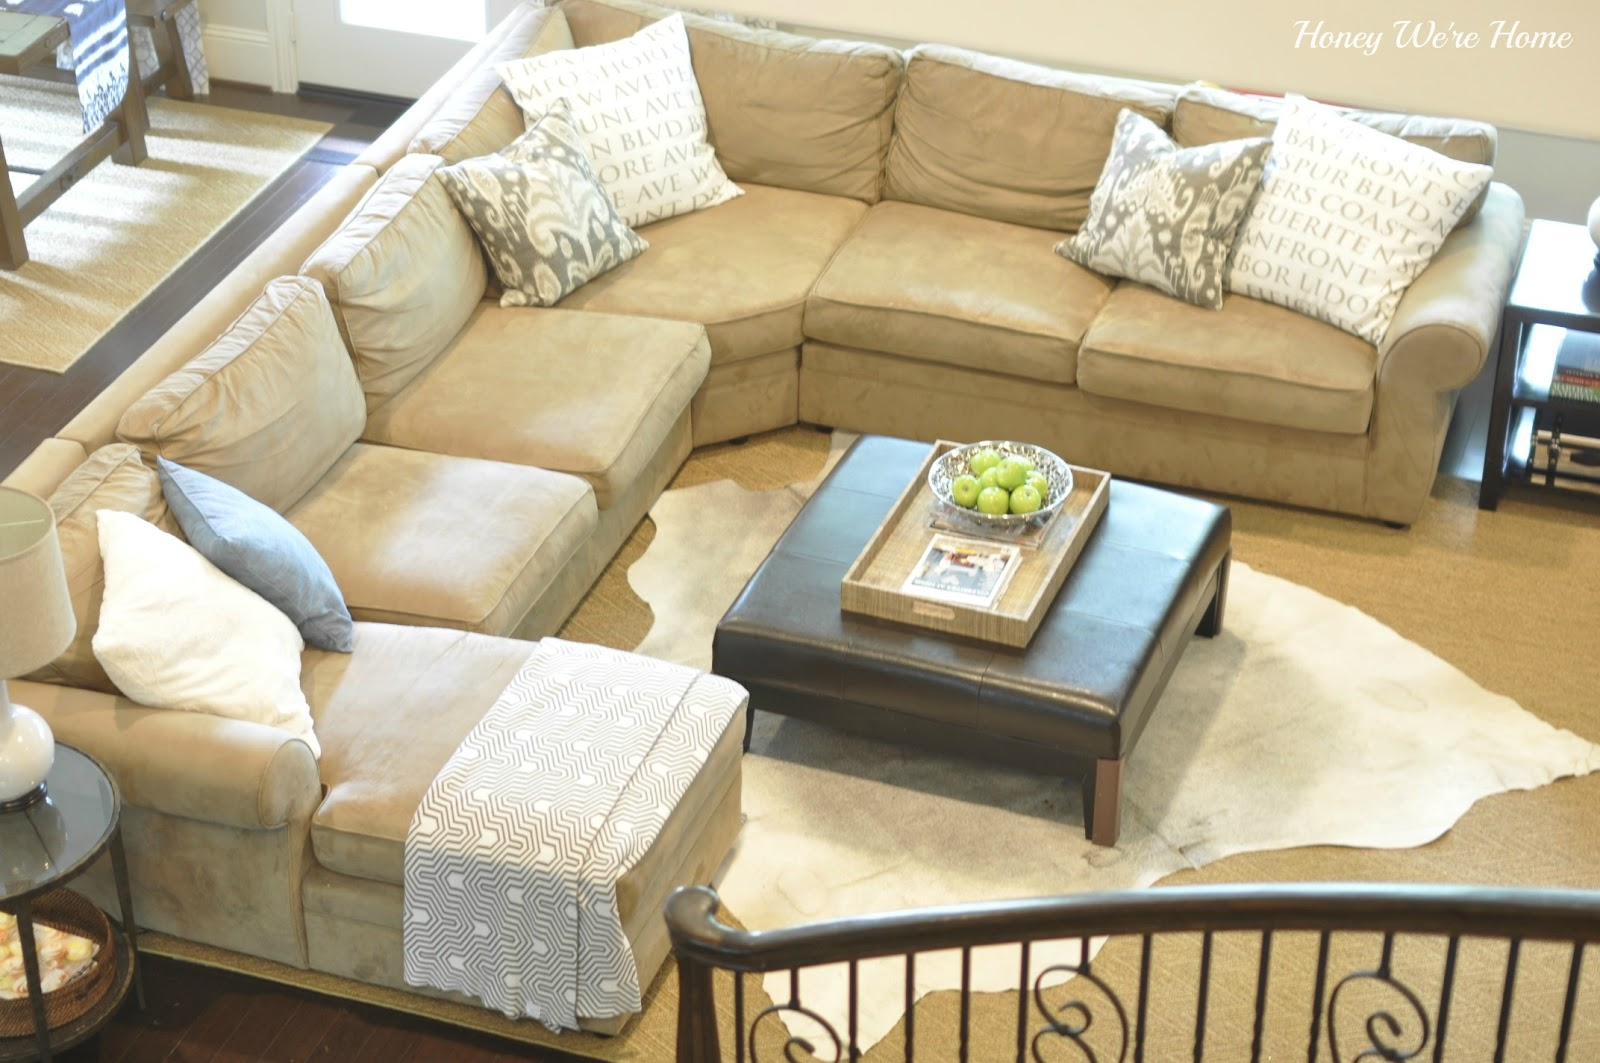 Cowhide Rug Love Our Updated Living Room Honey We Re Home